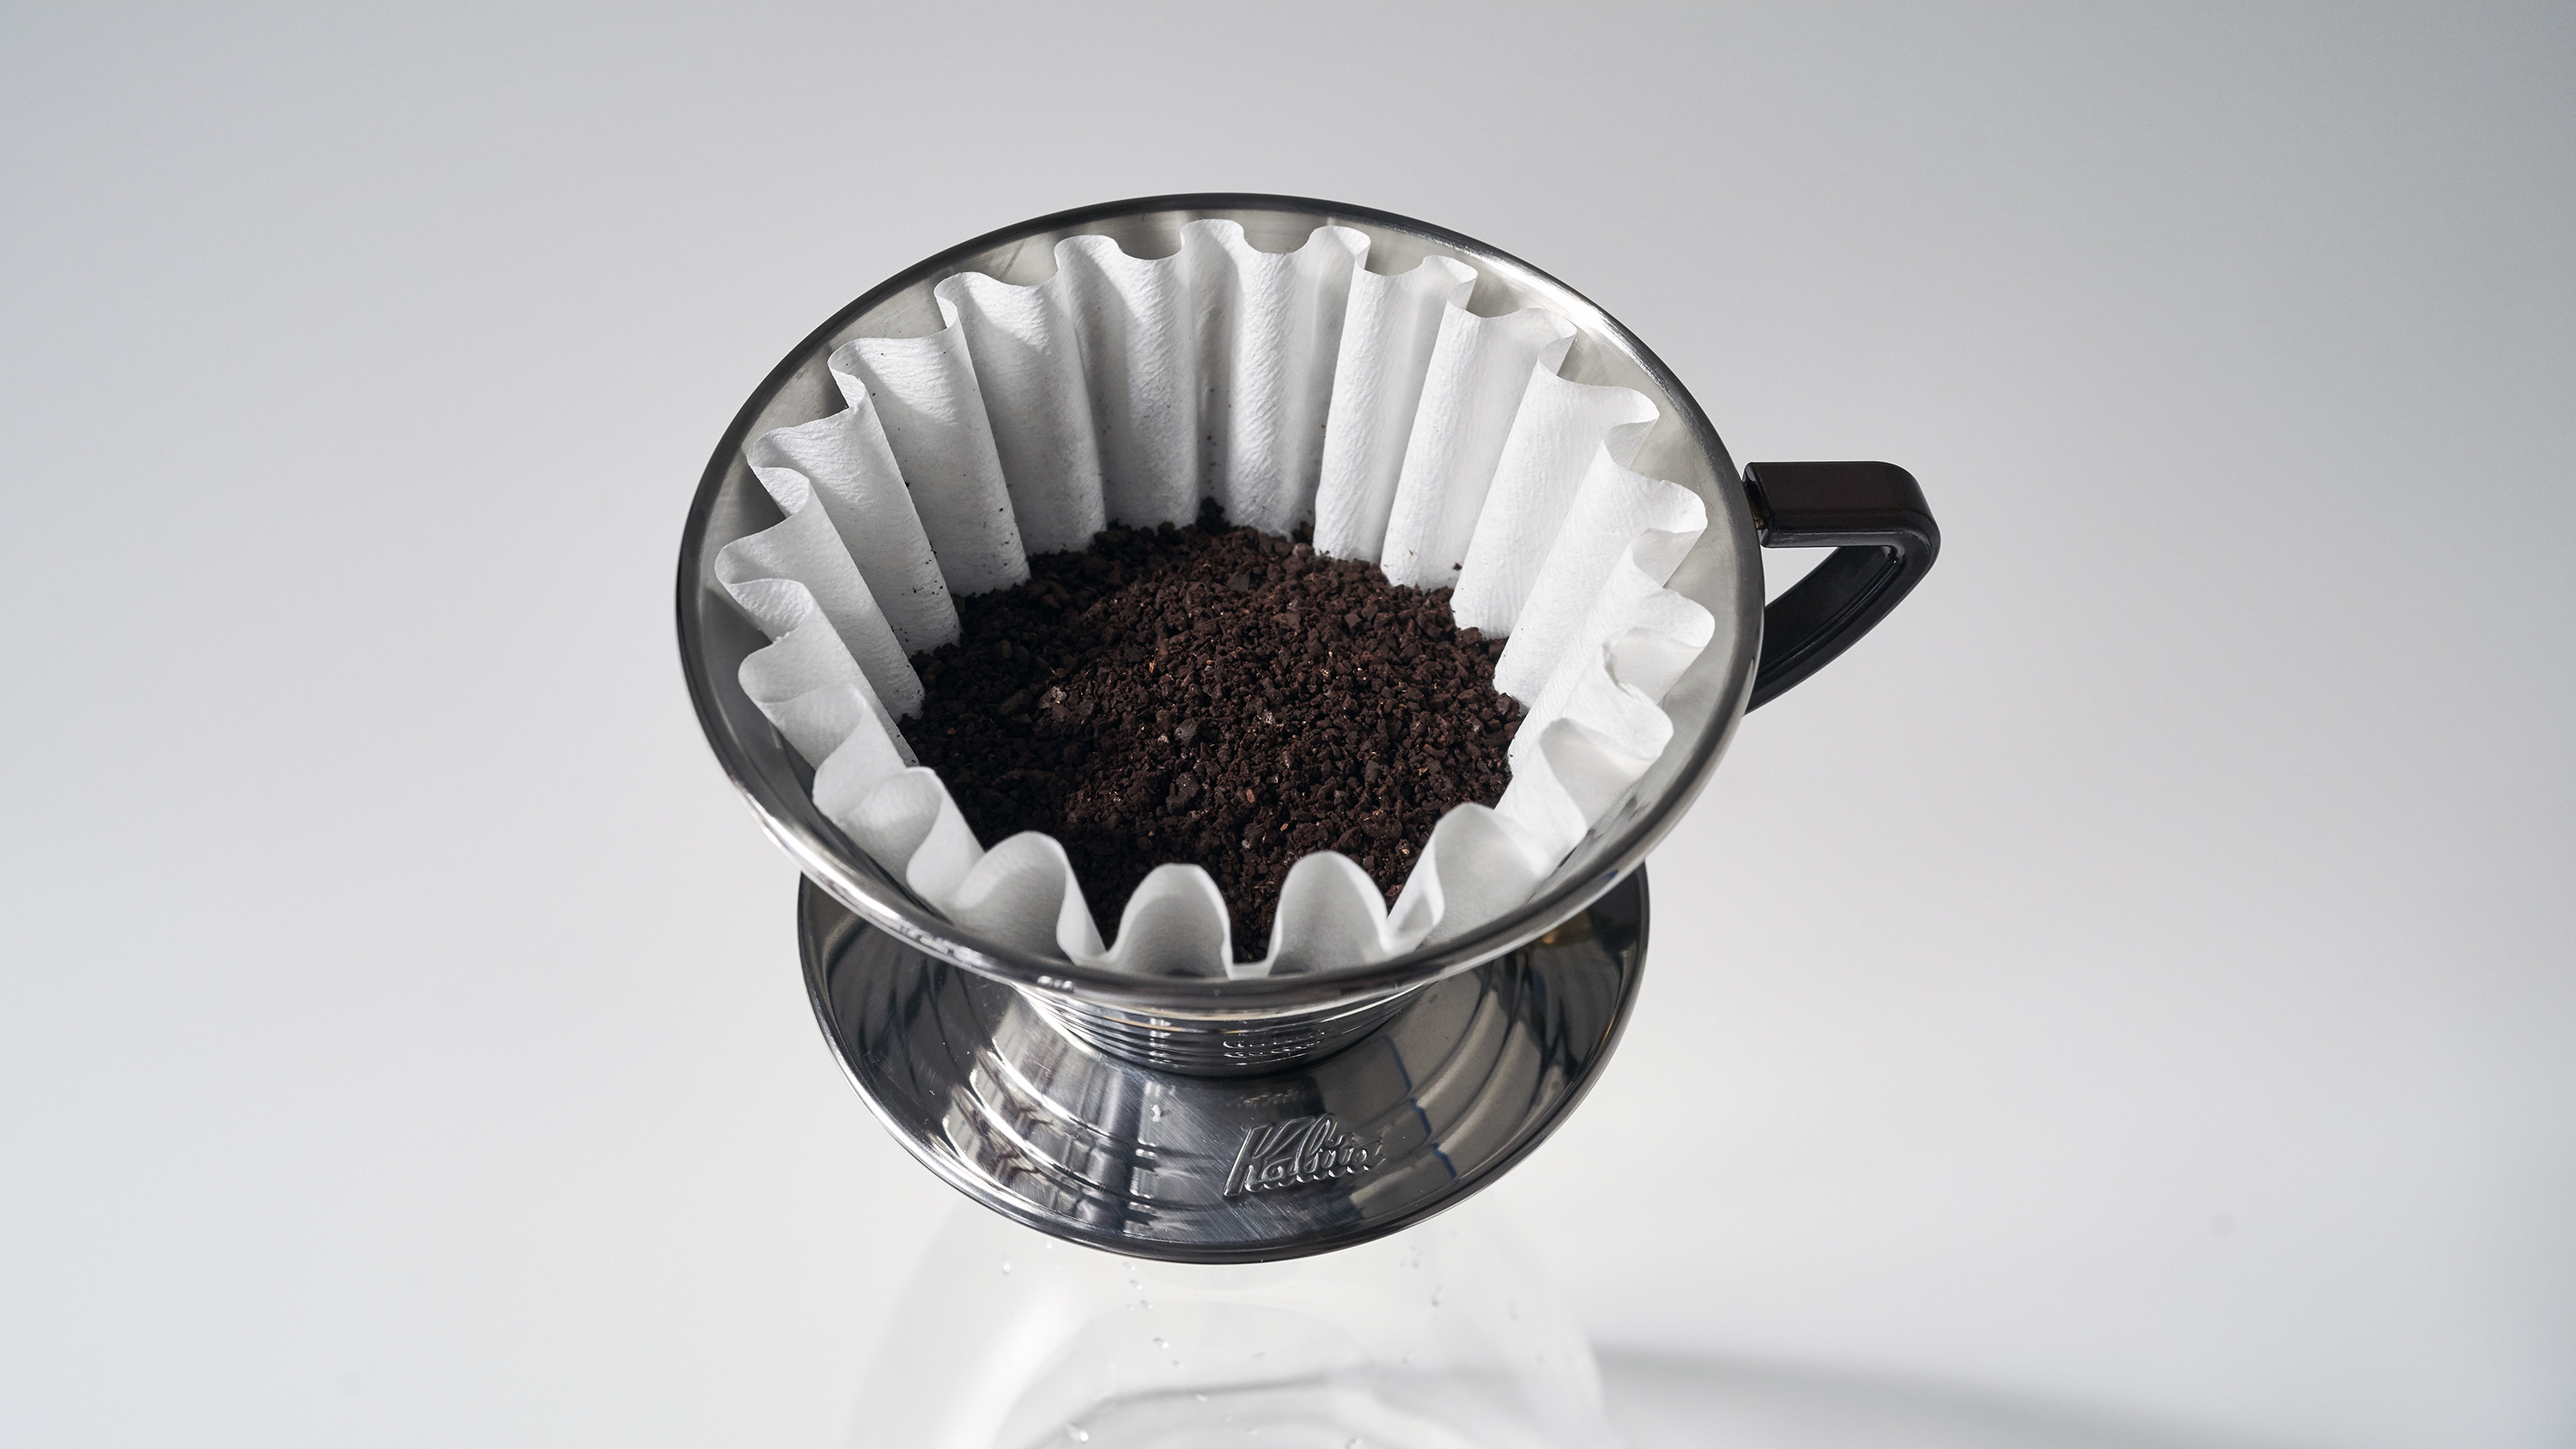 Add Coffee Filter & Grounds